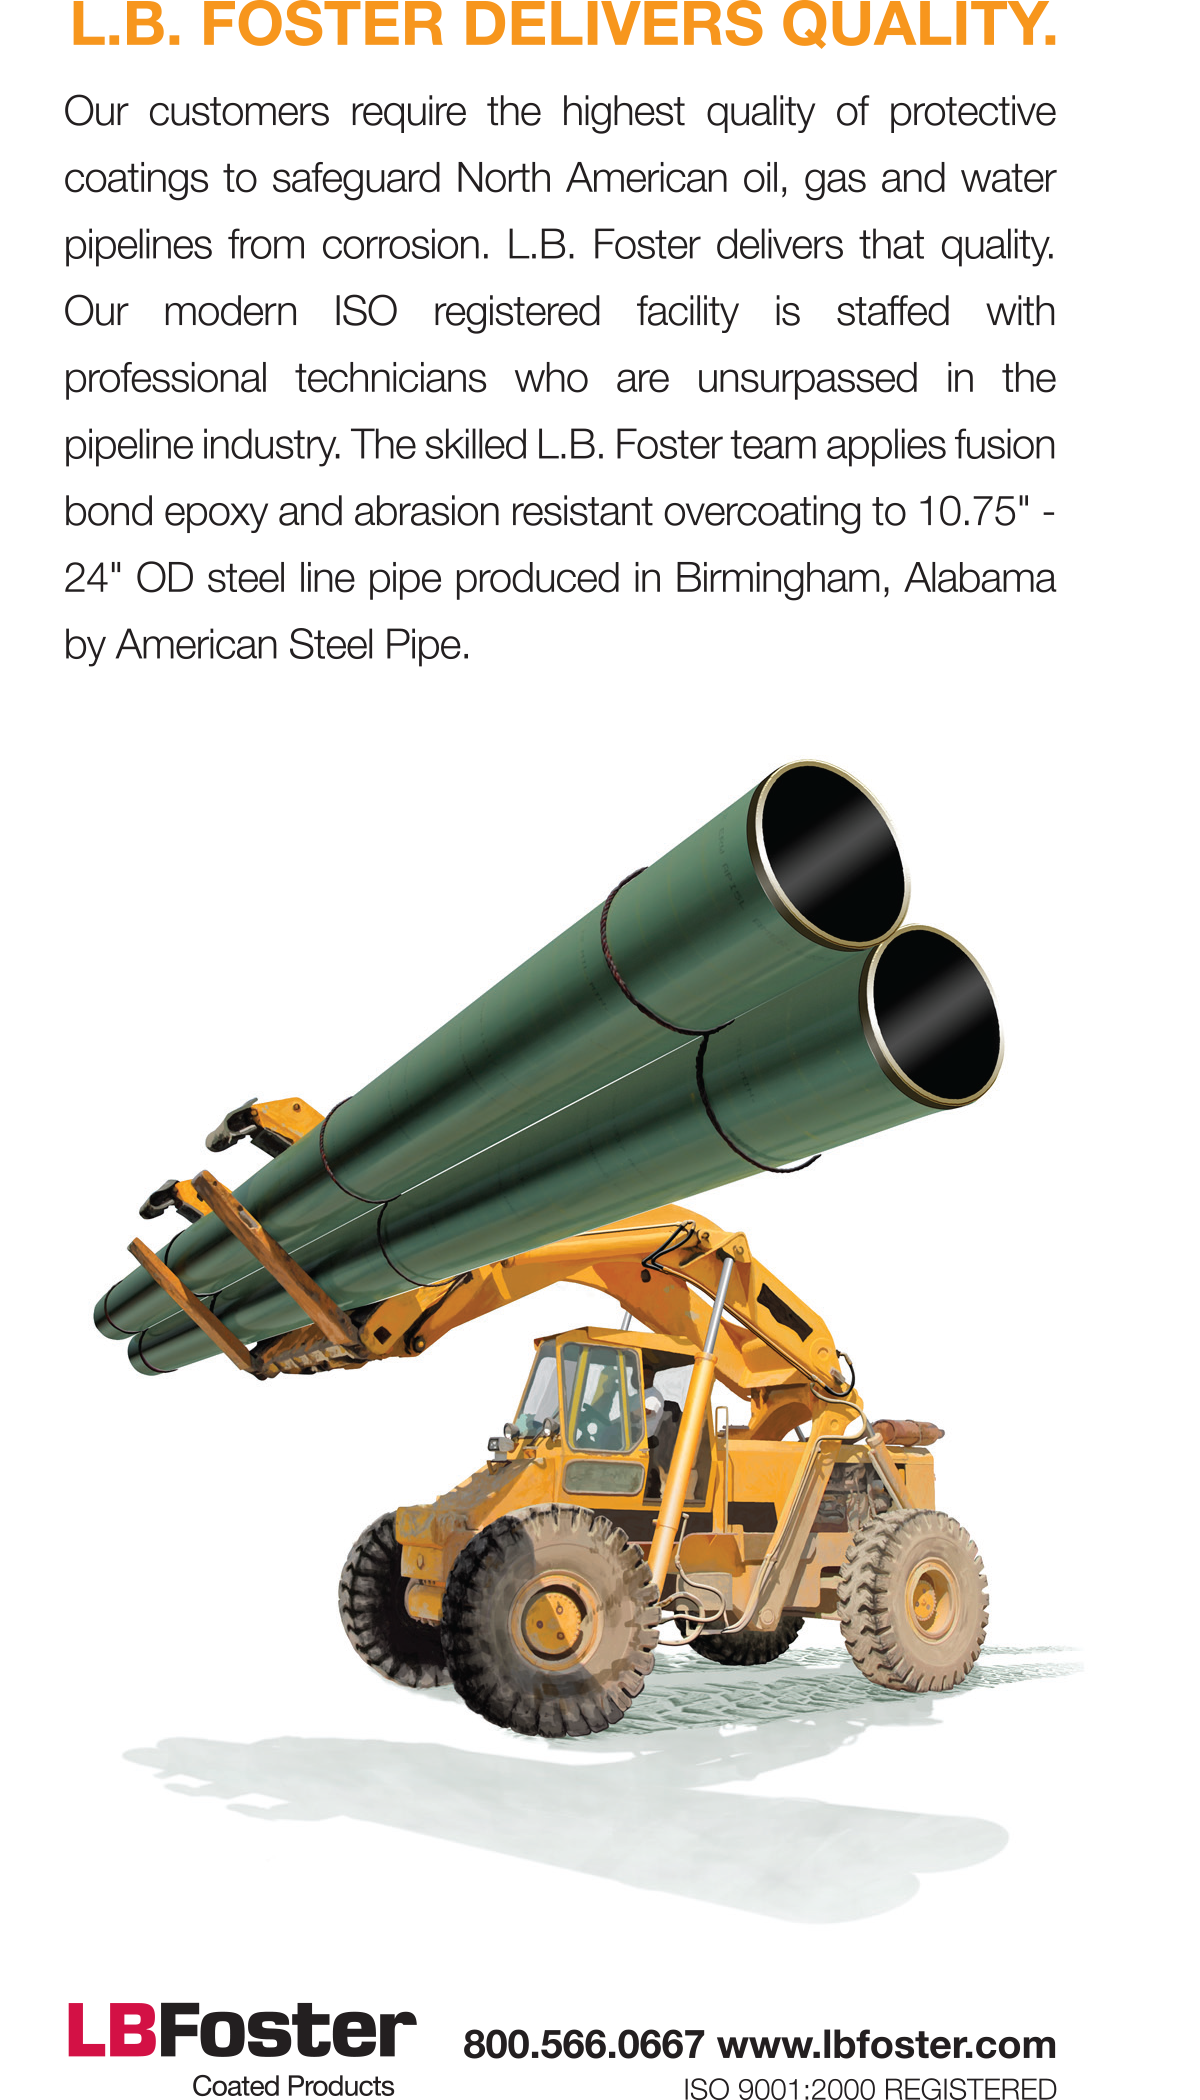 Pettibone Cary-Lift, Illustration, FBE, Steel Pipe, Energy Pipe, Line Pipe, Ninetimes, Material Handling, L.B. Foster, Corrosion Protection, Coated Pipe